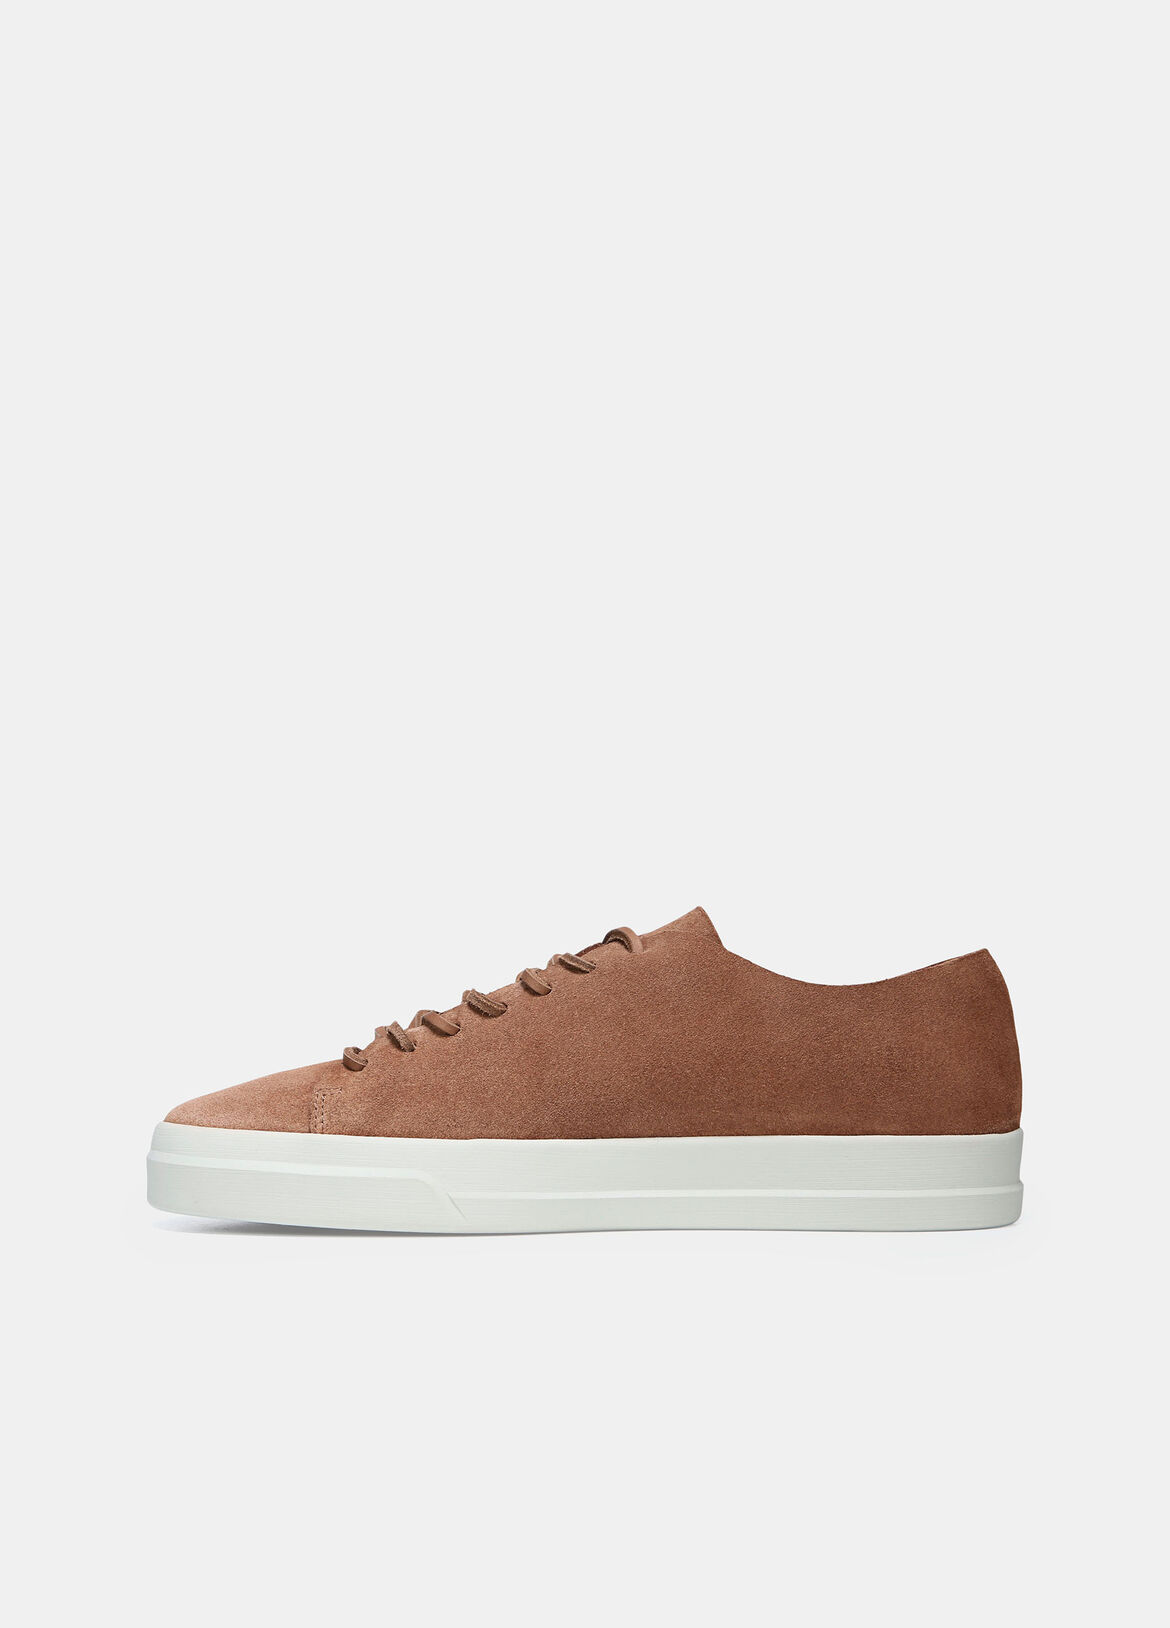 Crafted in supple suede with a smooth interior, these lace-up sneakers have tonal laces and a raw edge topline.